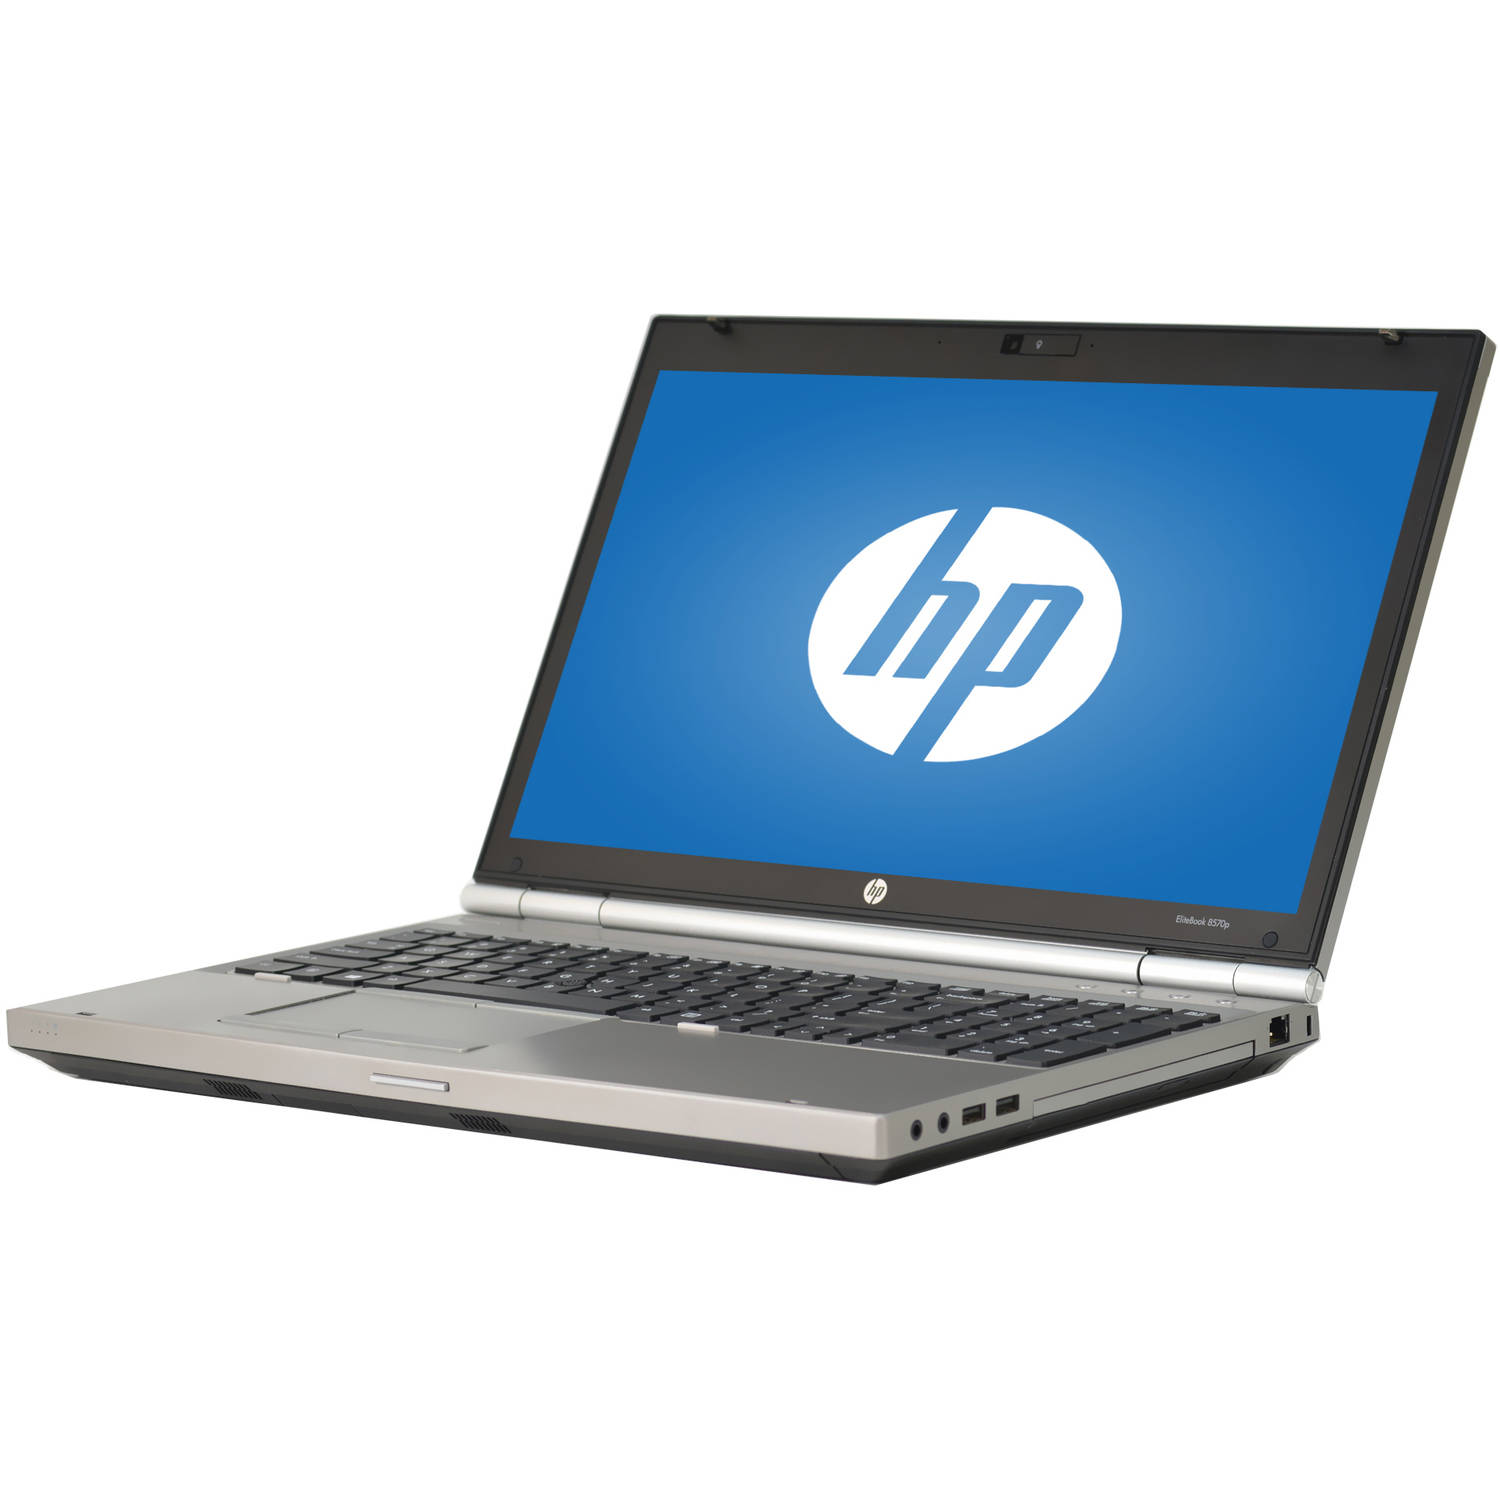 "Refurbished HP Silver 15.6"" Elitebook 8570P WA5-0775 Laptop PC with Intel Core i7-3740QM Processor, 8GB Memory, 128GB Solid State Drive and Windows 7 Professional"